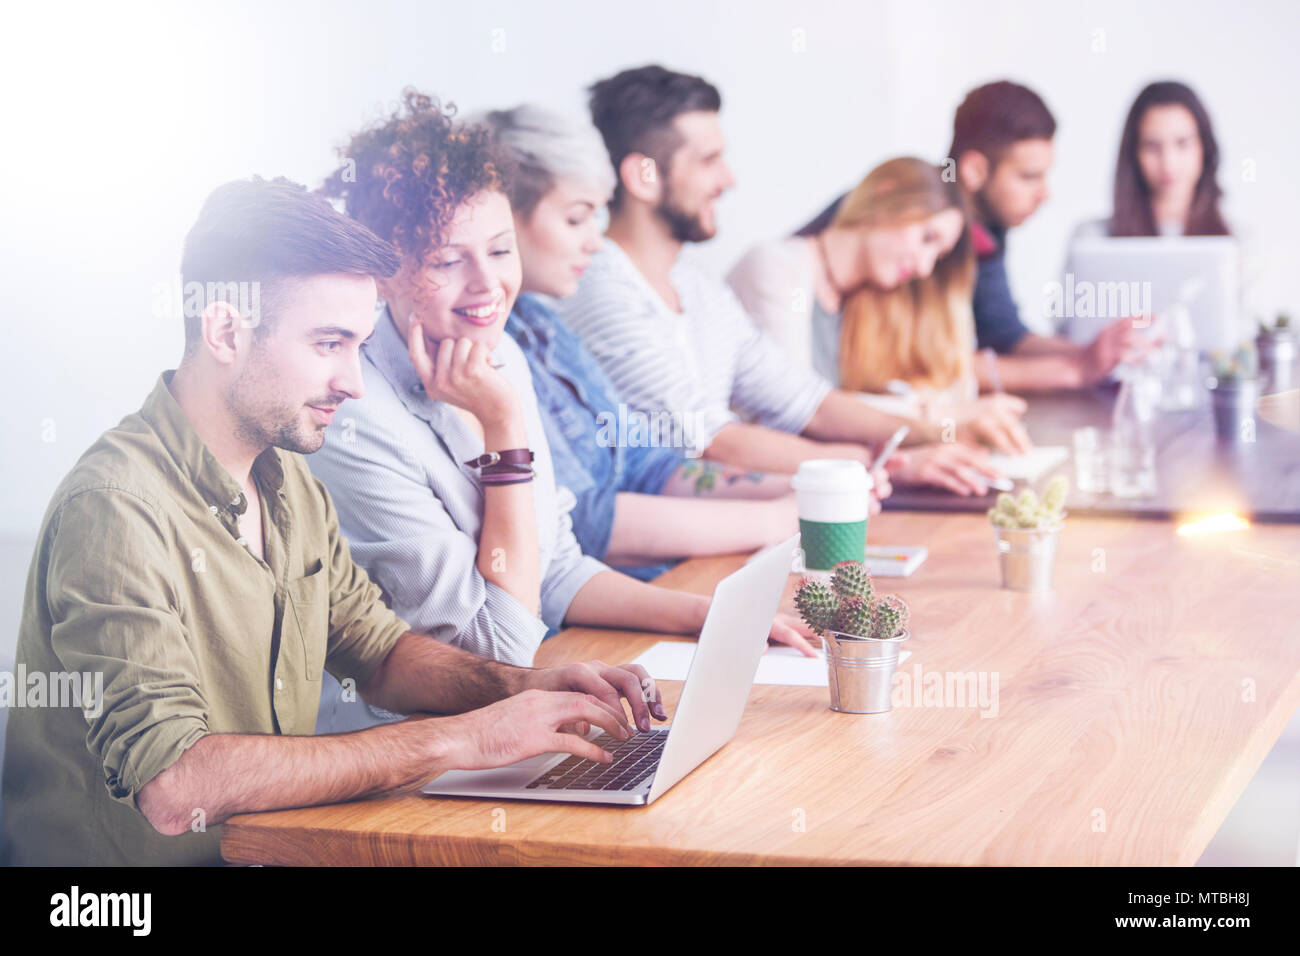 Employees at work in a modern office, enjoying laid back atmosphere - Stock Image